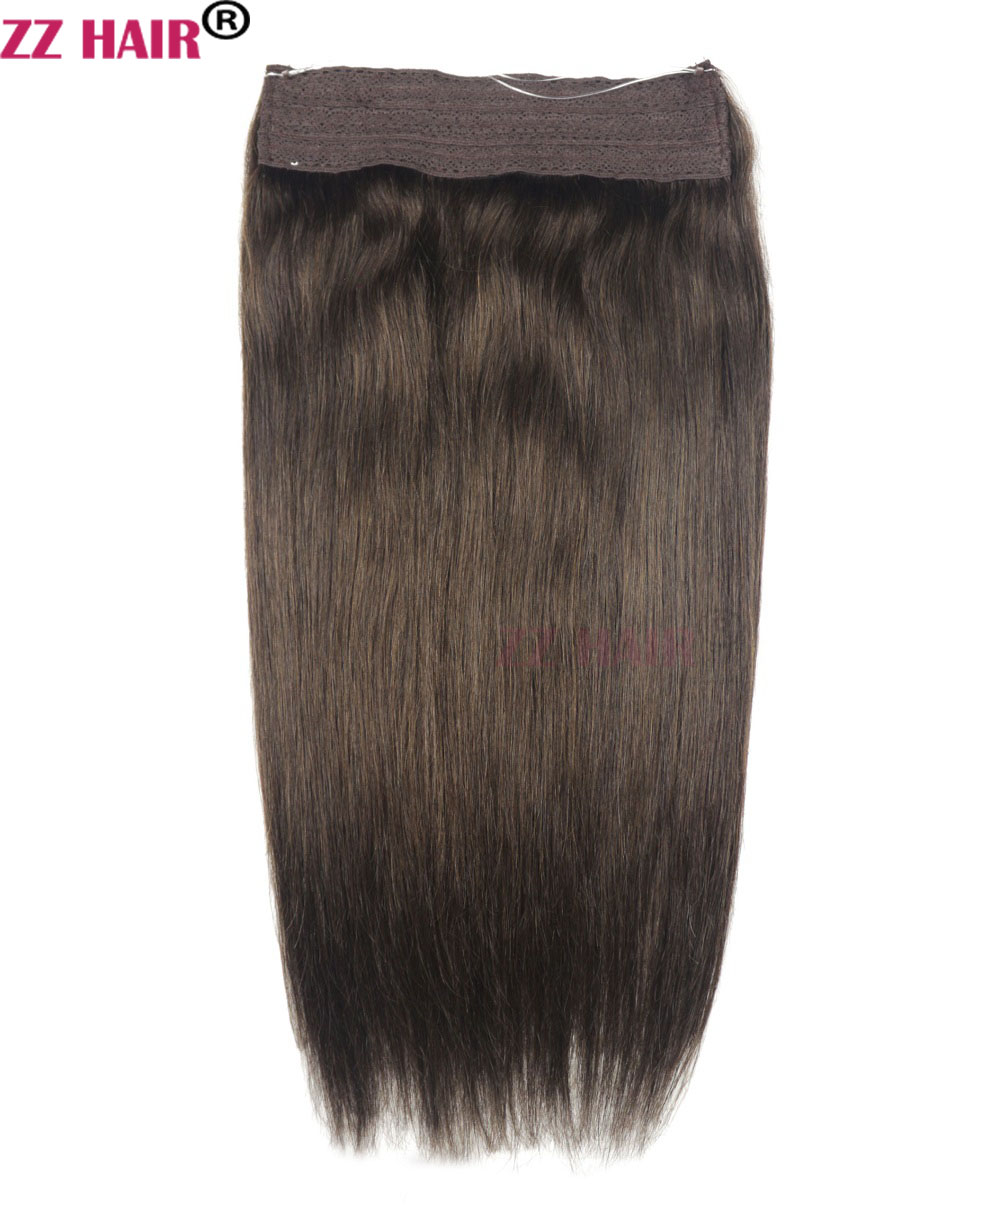 ZZHAIR 120g 16 28 Non remy Halo Hair Flip in Human Hair Extensions 23 Colors One